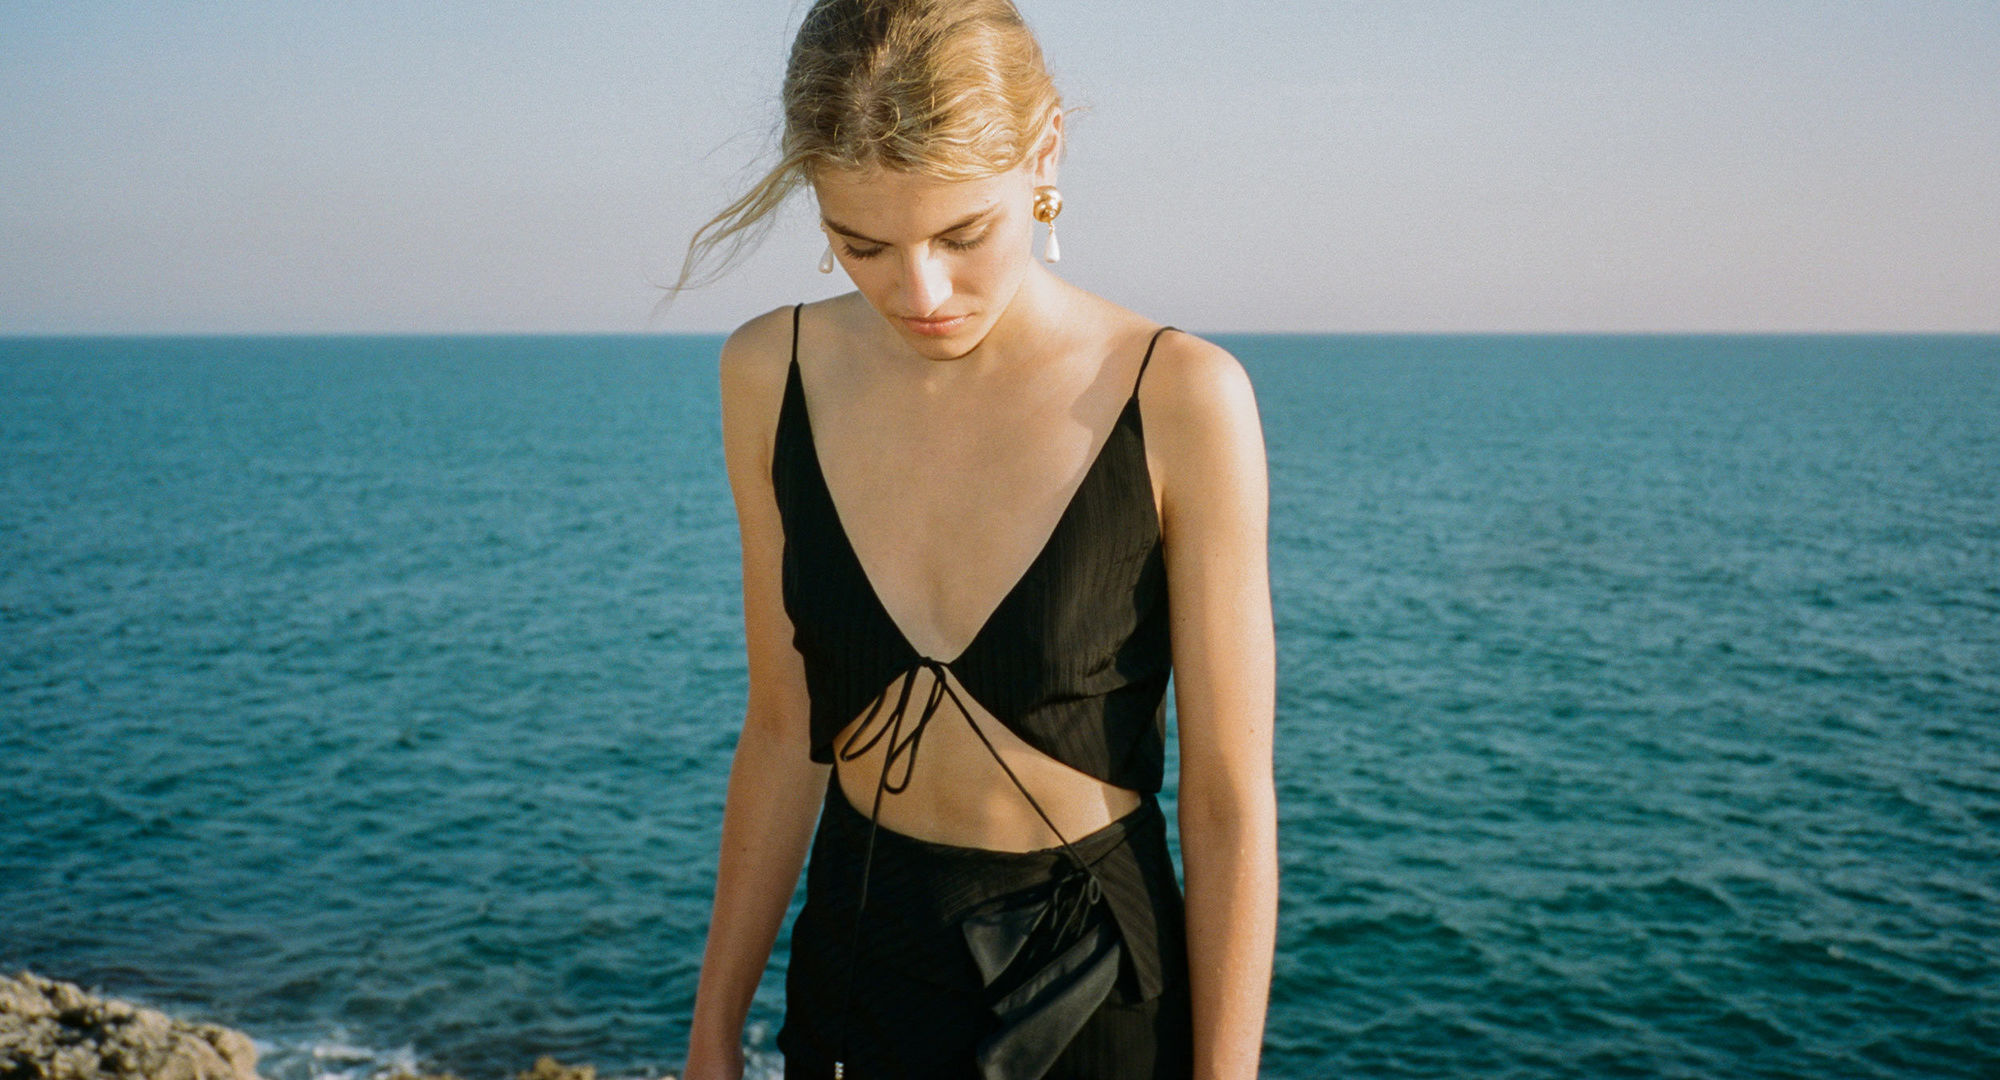 Explore Spring Summer 2019 Circeo image